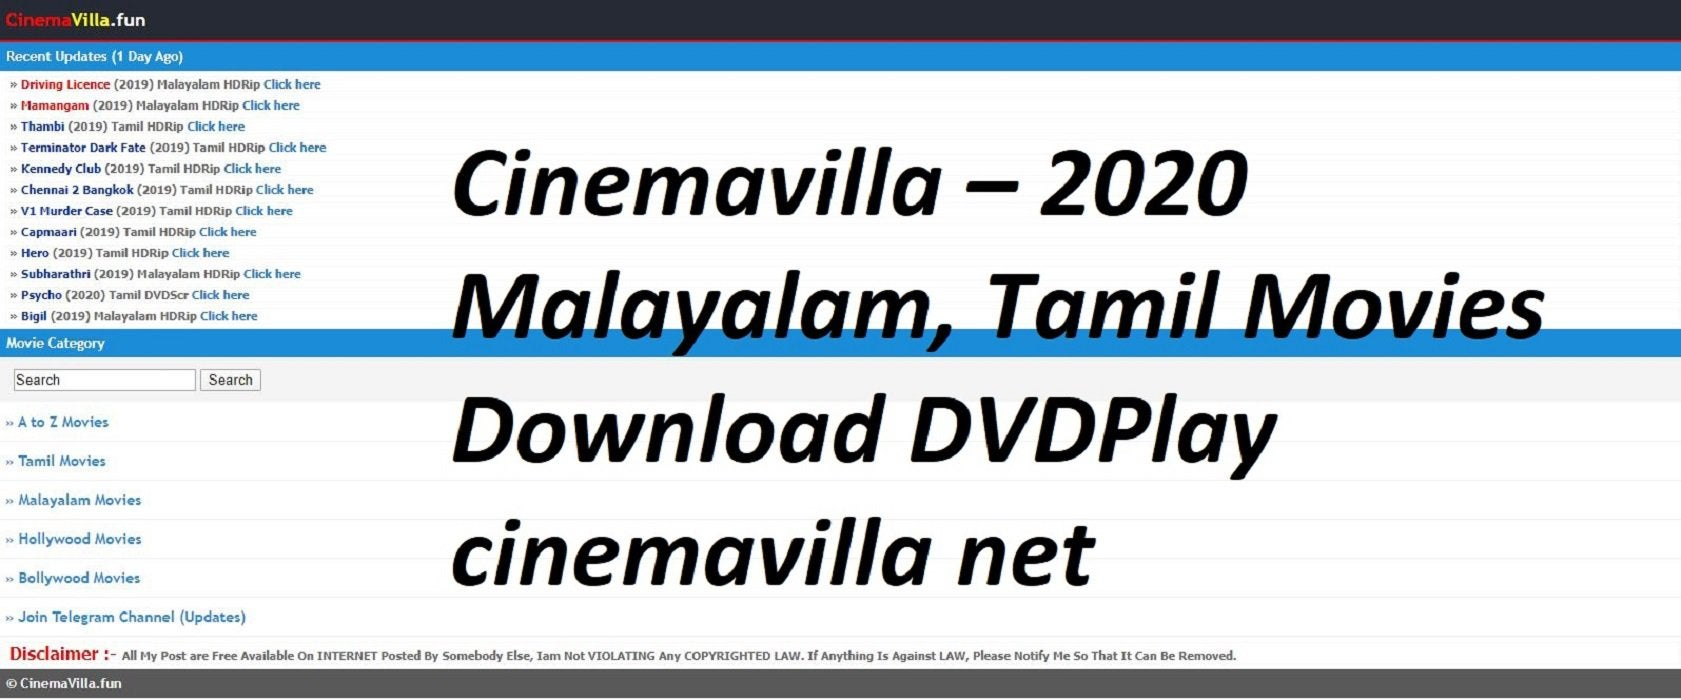 Cinemavilla2020